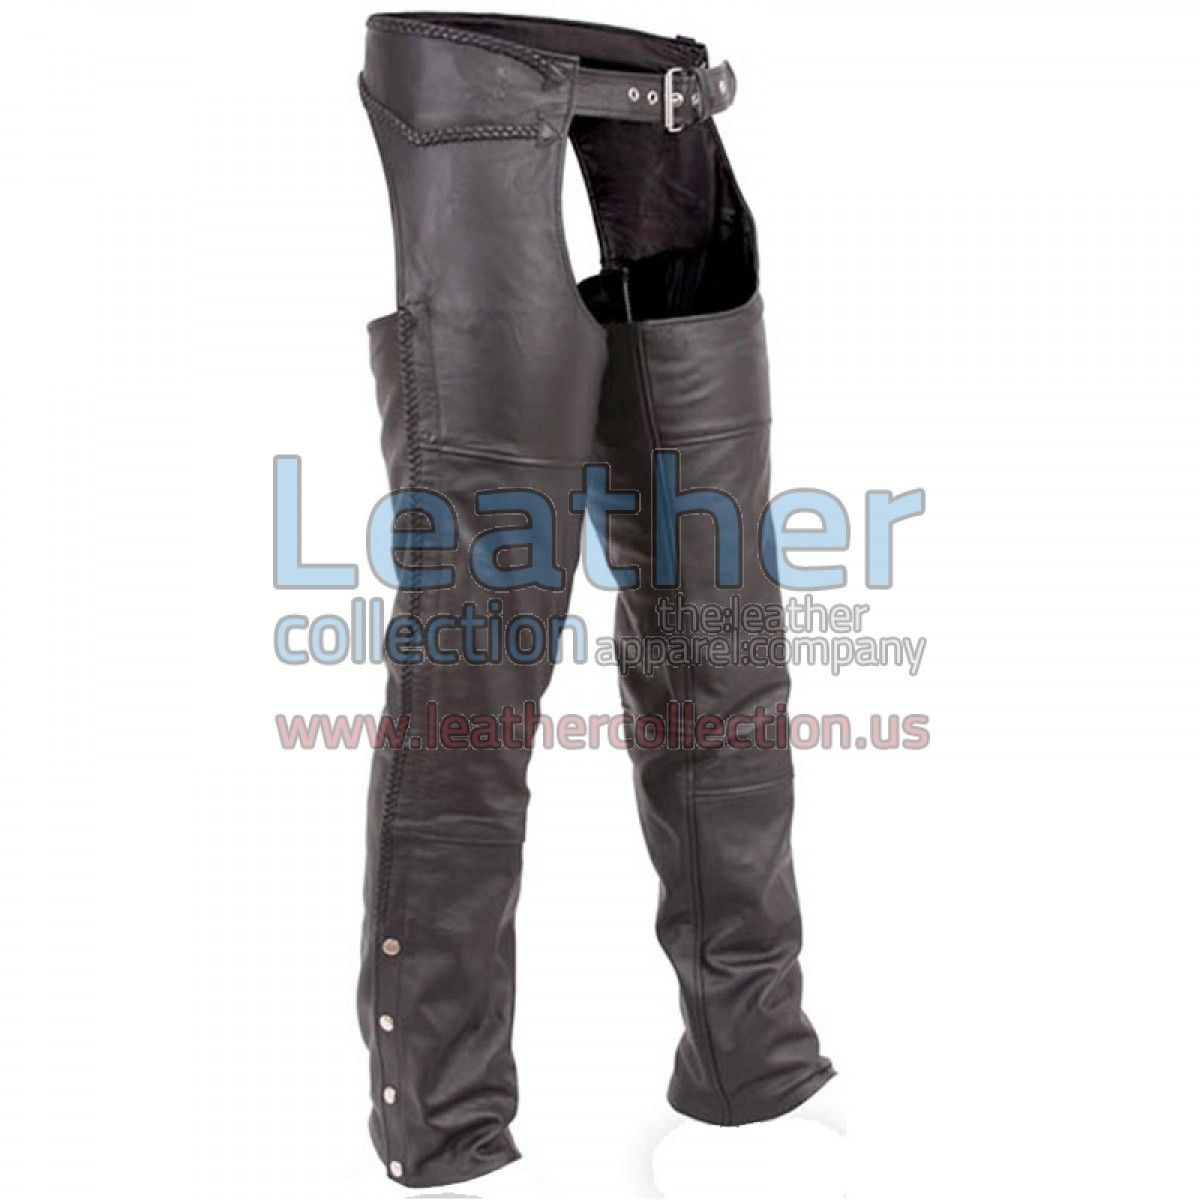 Classic Motorcycle Chaps with Braid Detail, Classic fitted, lined all the way to the knee, Great classic look and feel of high quality Top Grade cowhide leather. Unfinished hems. Wear them as they are or have them hemmed. Exclusive style and design